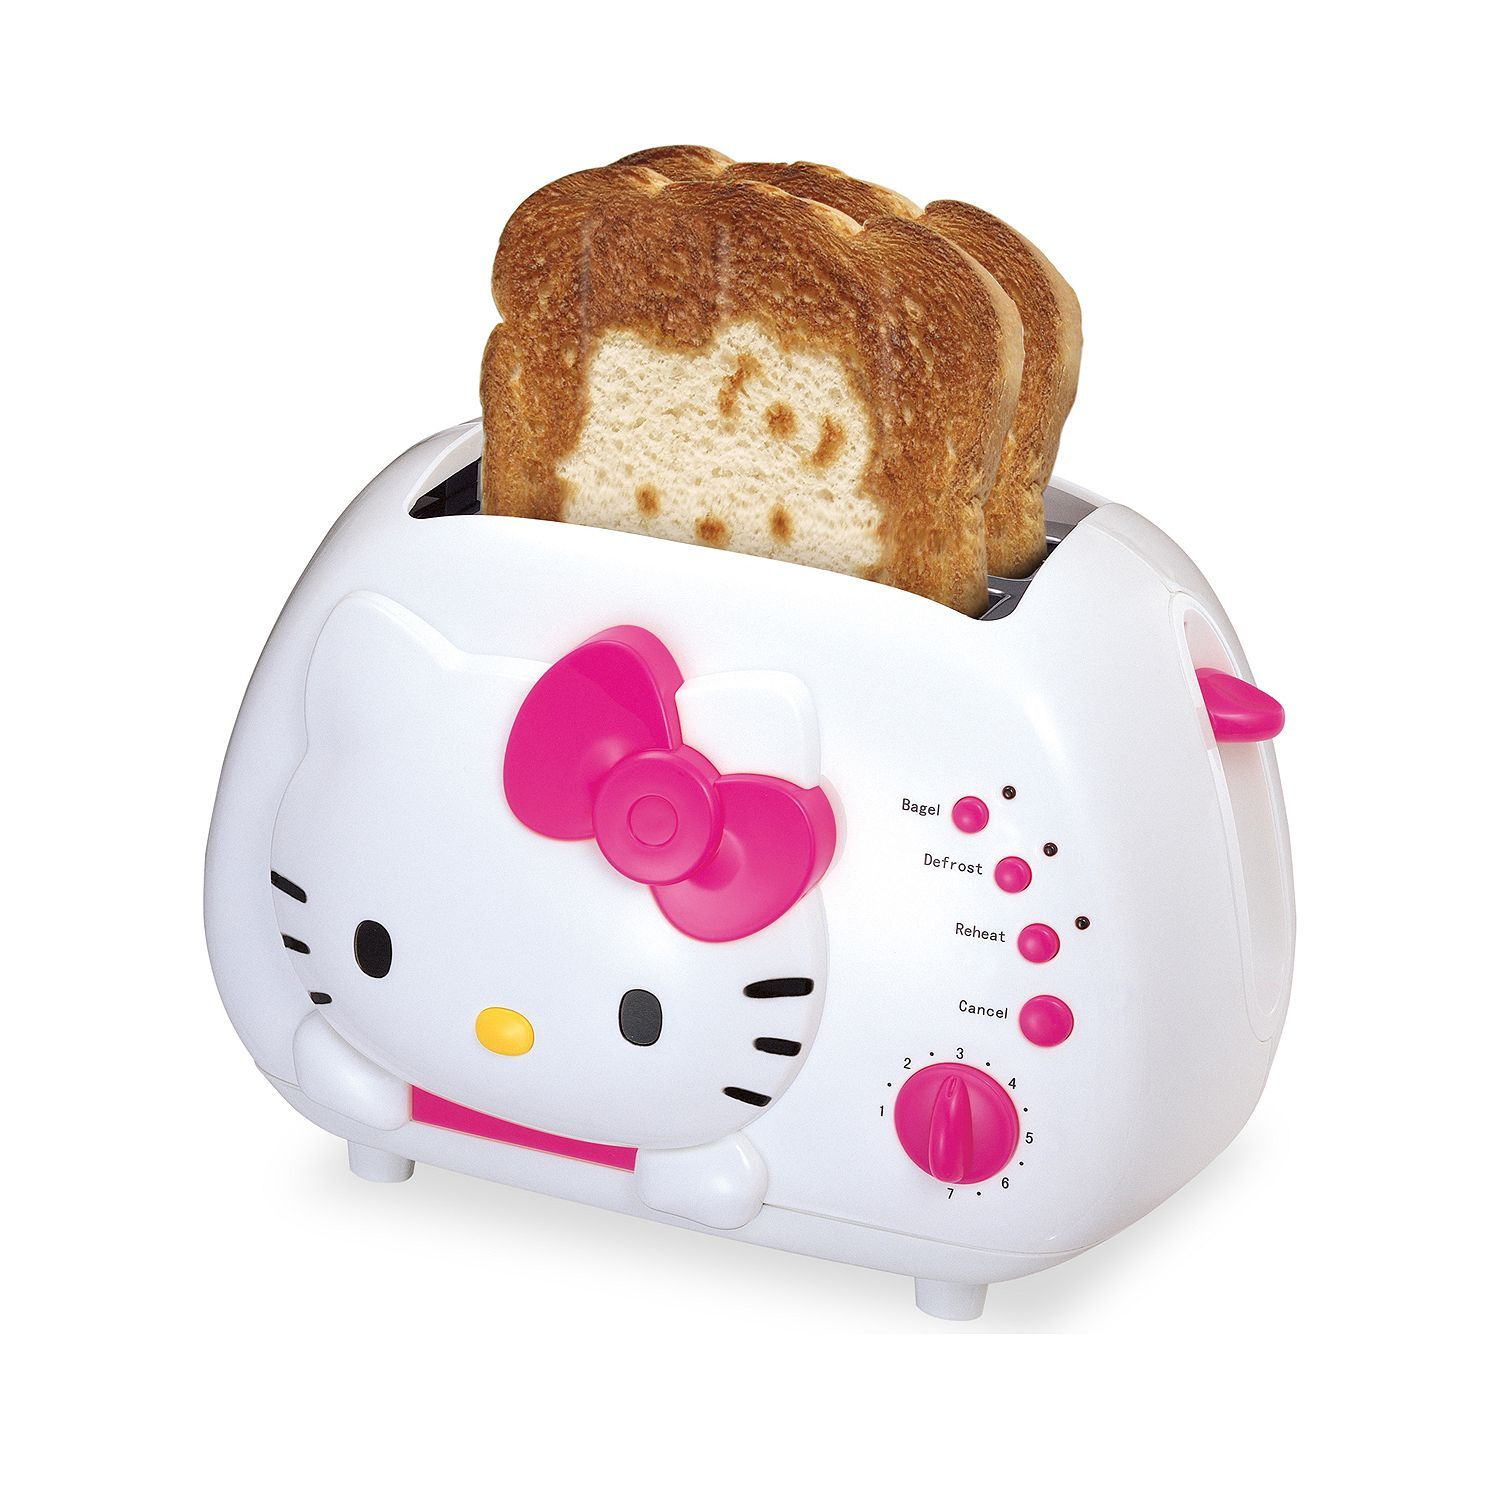 The Hello Kitty face on every slice of your toast. Savanna Henningfield I can see your sister wanting this.